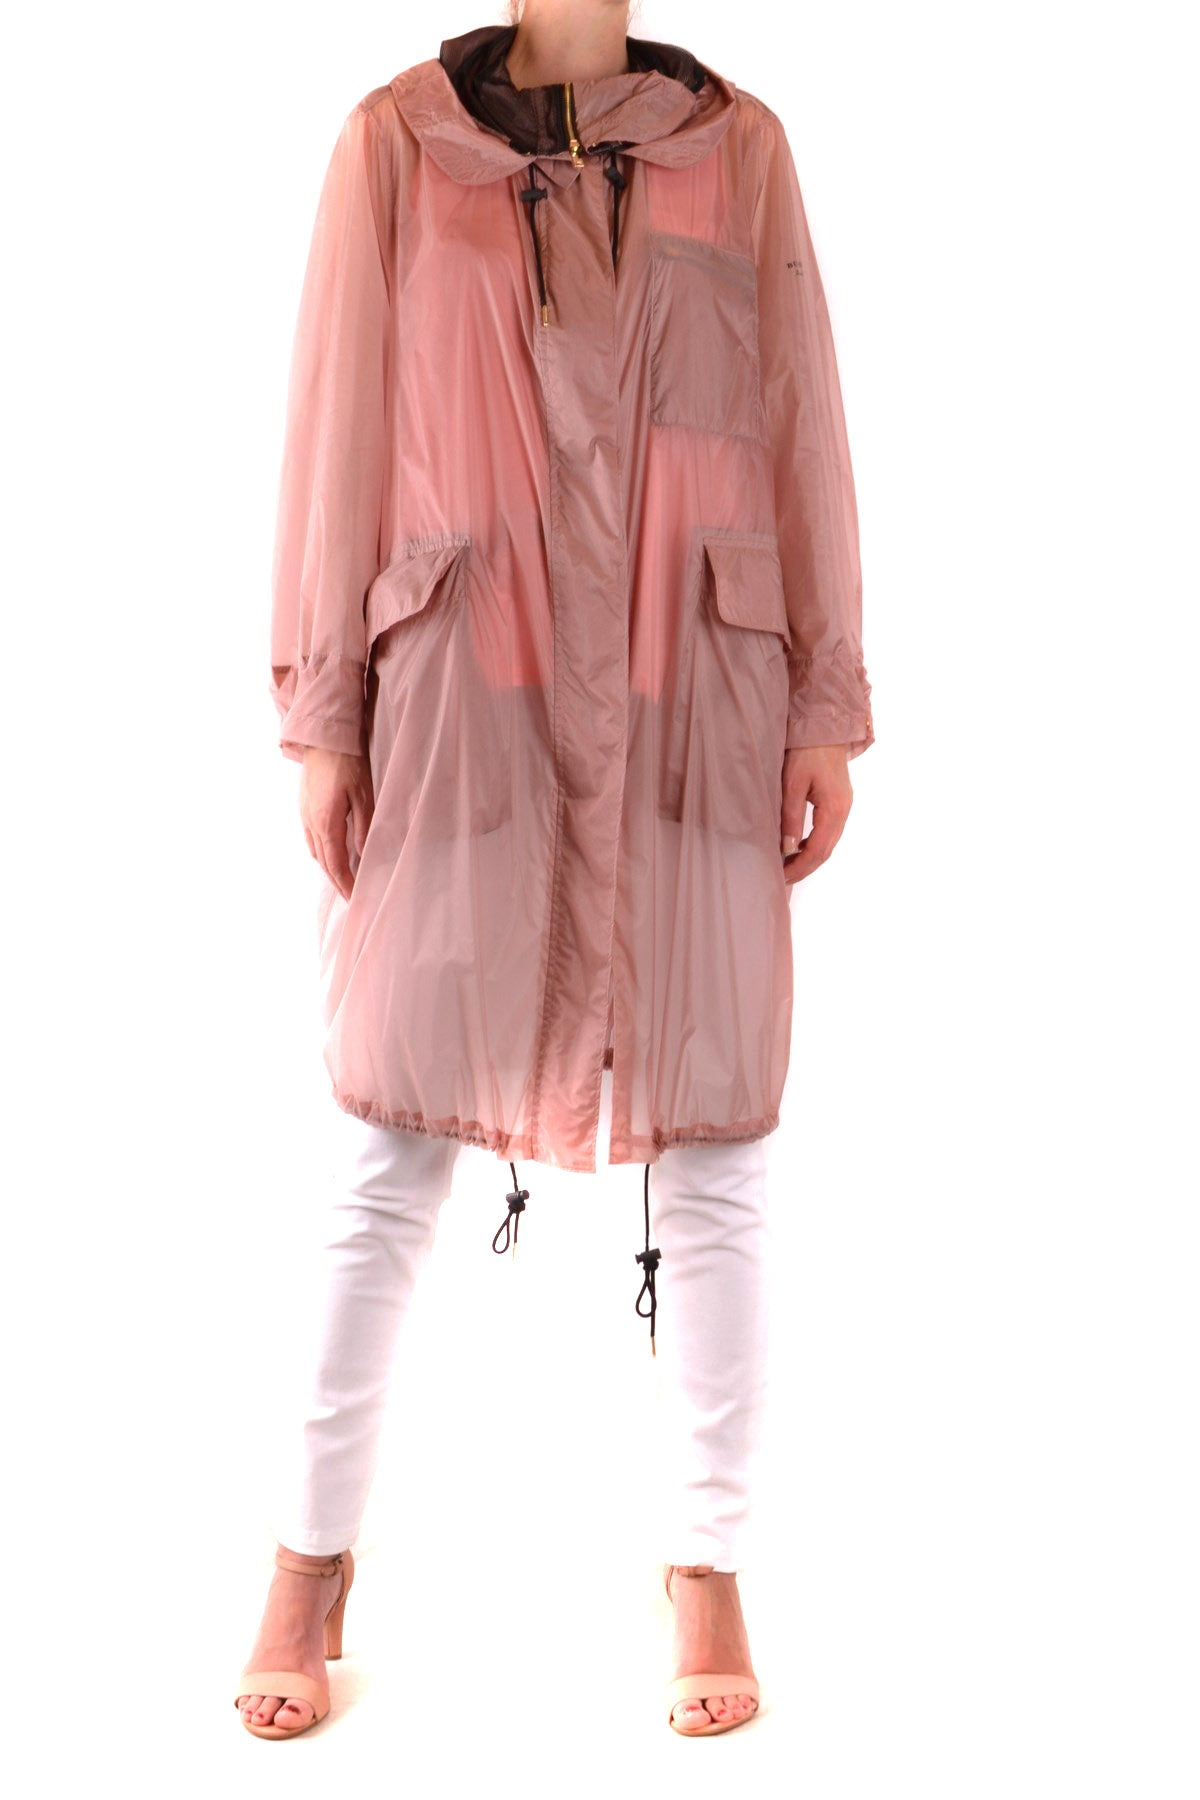 Trench Burberry-Trenches - WOMAN-Product Details Season: Spring / SummerTerms: New With LabelMain Color: PinkGender: WomanMade In: EnglandManufacturer Part Number: 14049873 Campi H17Size: IntYear: 2018Clothing Type: TrenchComposition: Polyamide 100%-Keyomi-Sook